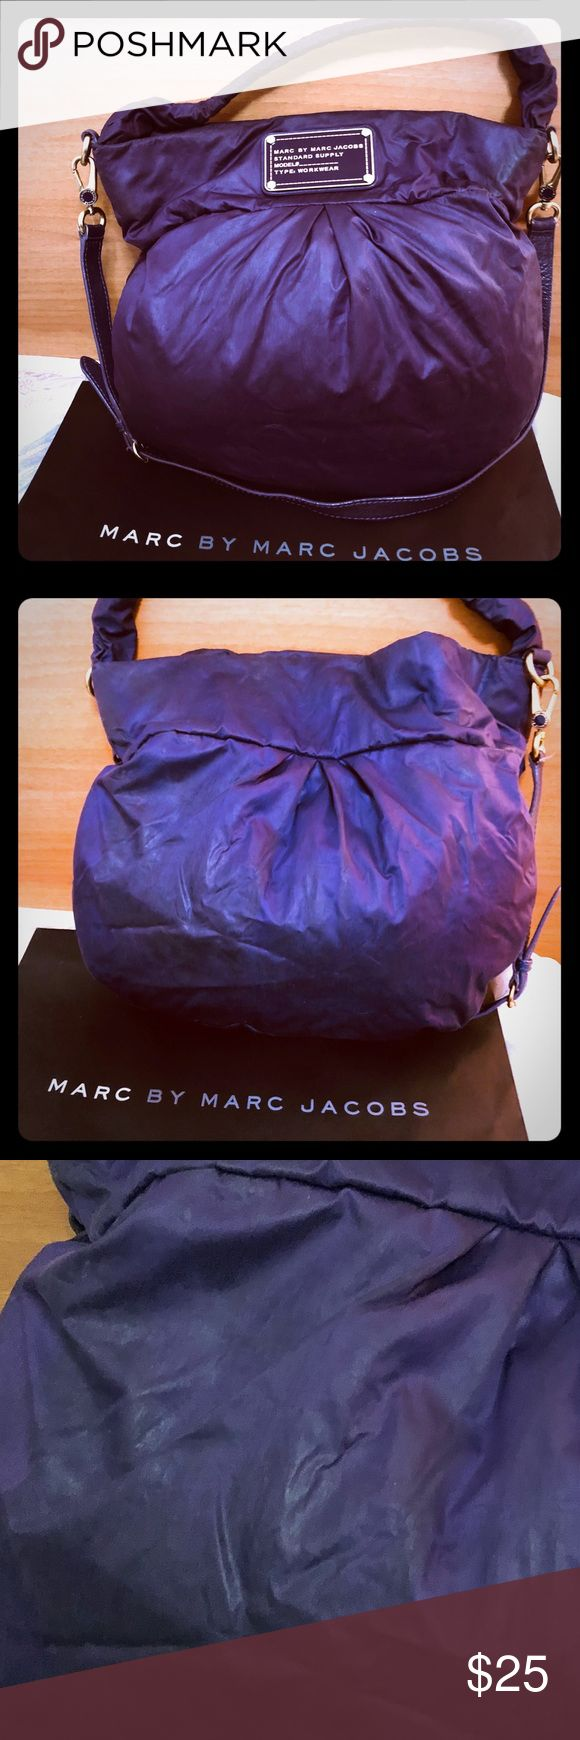 Marc by Marc Jacobs's purple shoulder bag Marc by Marc Jacobs purple shoulder bag with long straps ( mild  stain  back of purse still good condition no damage) Marc By Marc Jacobs Bags Shoulder Bags